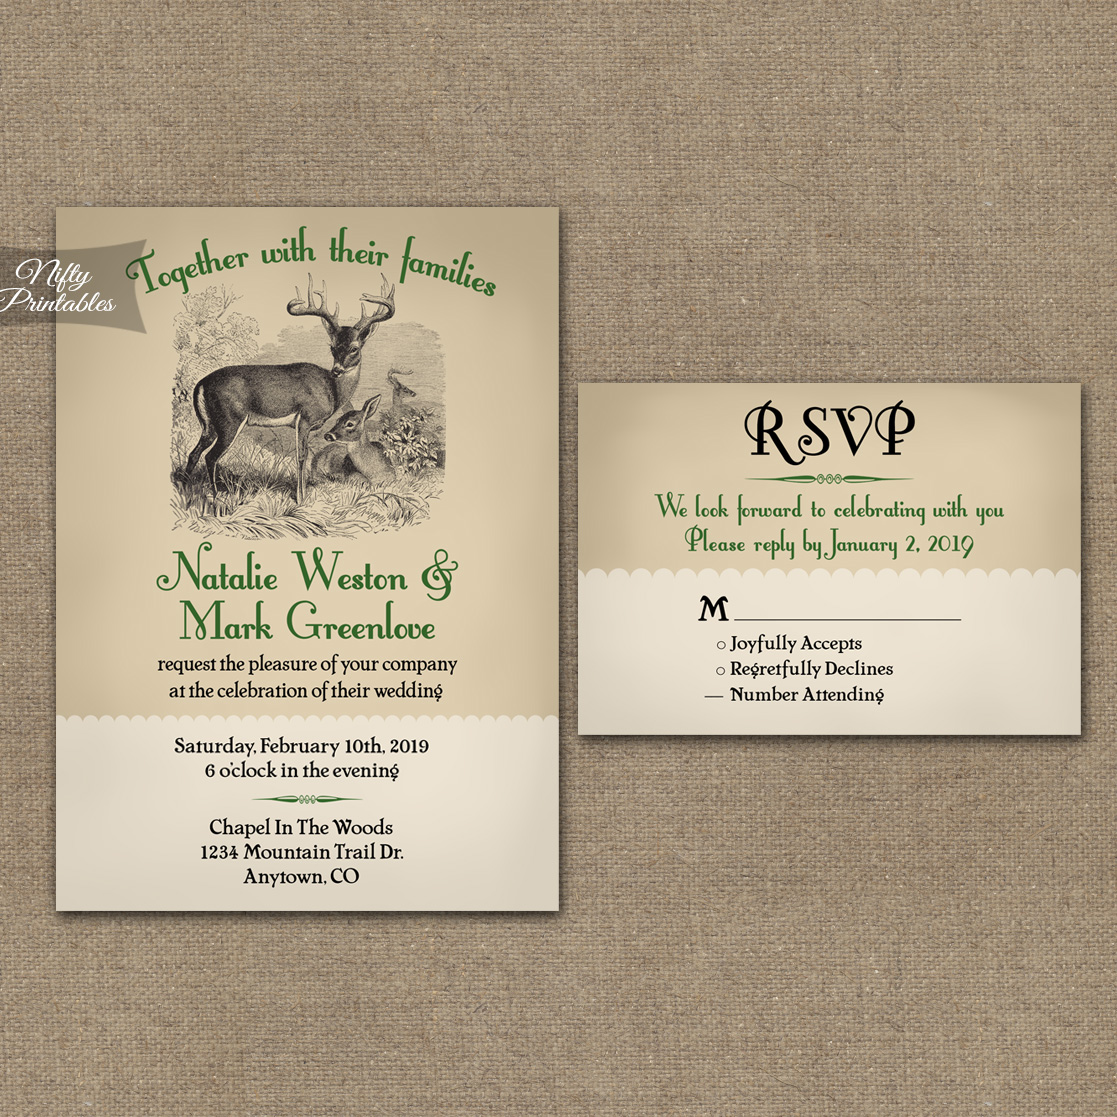 Deer Wedding Invitations is one of our best ideas you might choose for invitation design